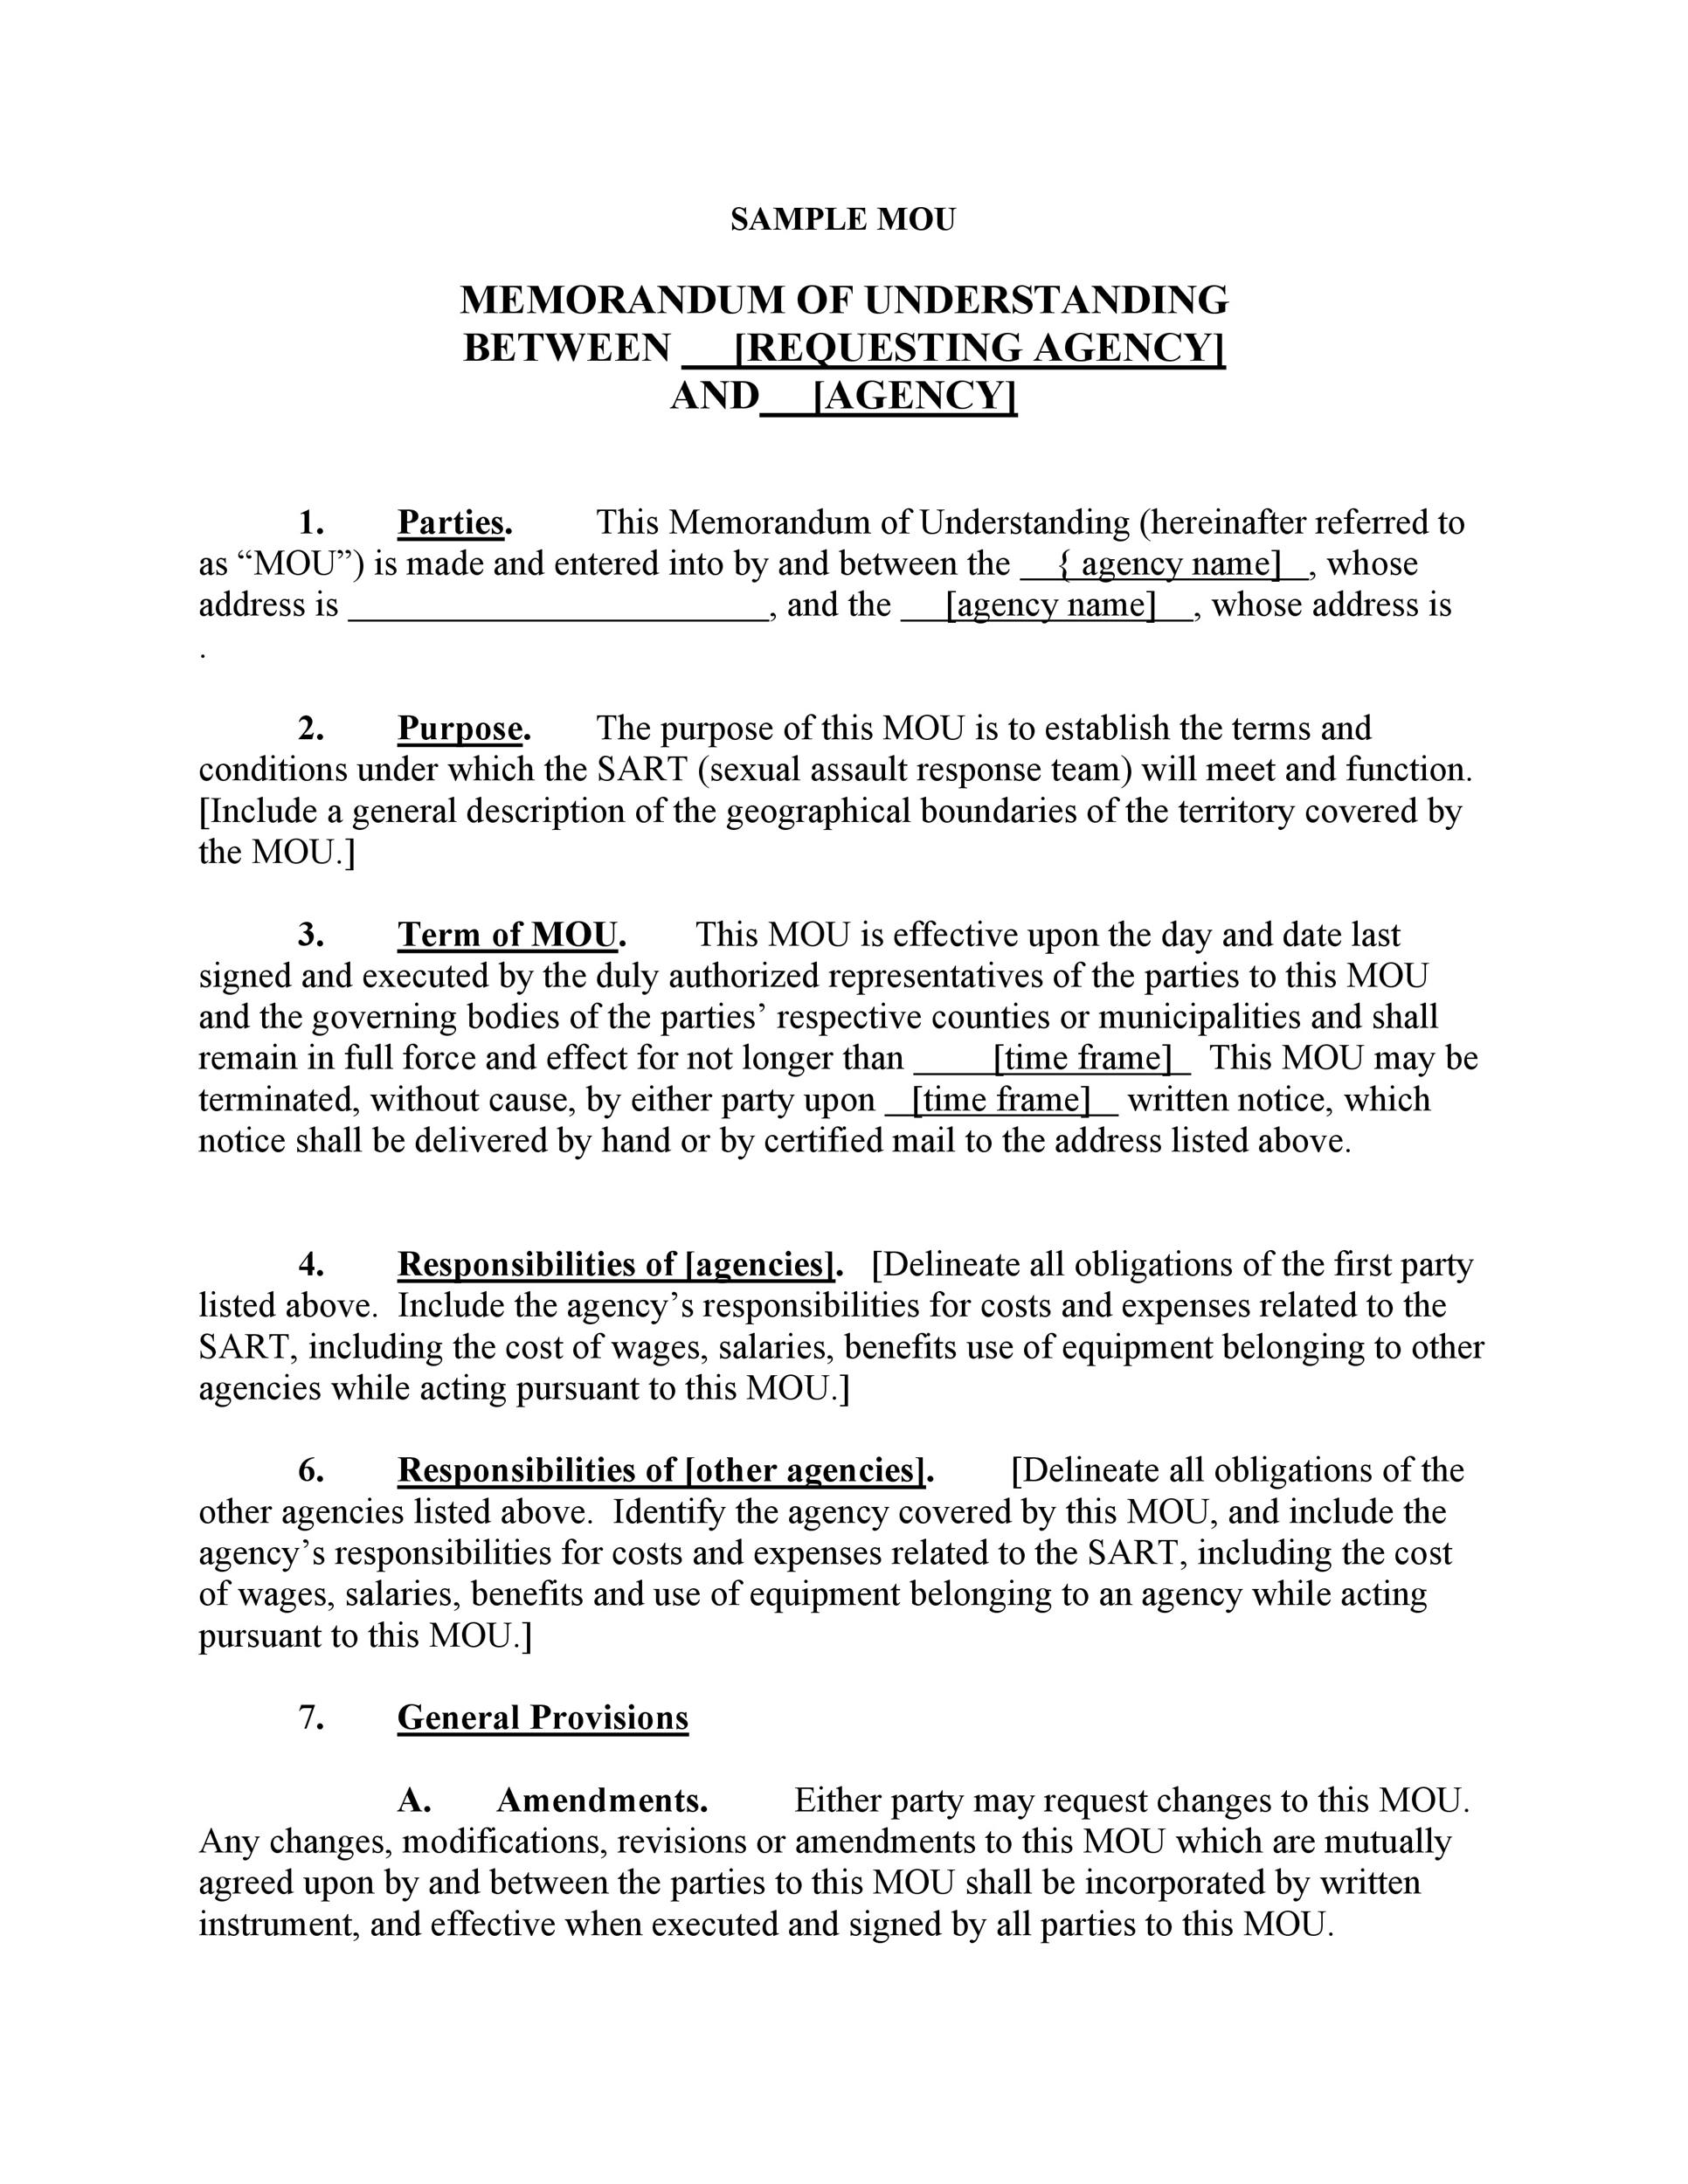 50 free memorandum of understanding templates word for Template for a memorandum of understanding